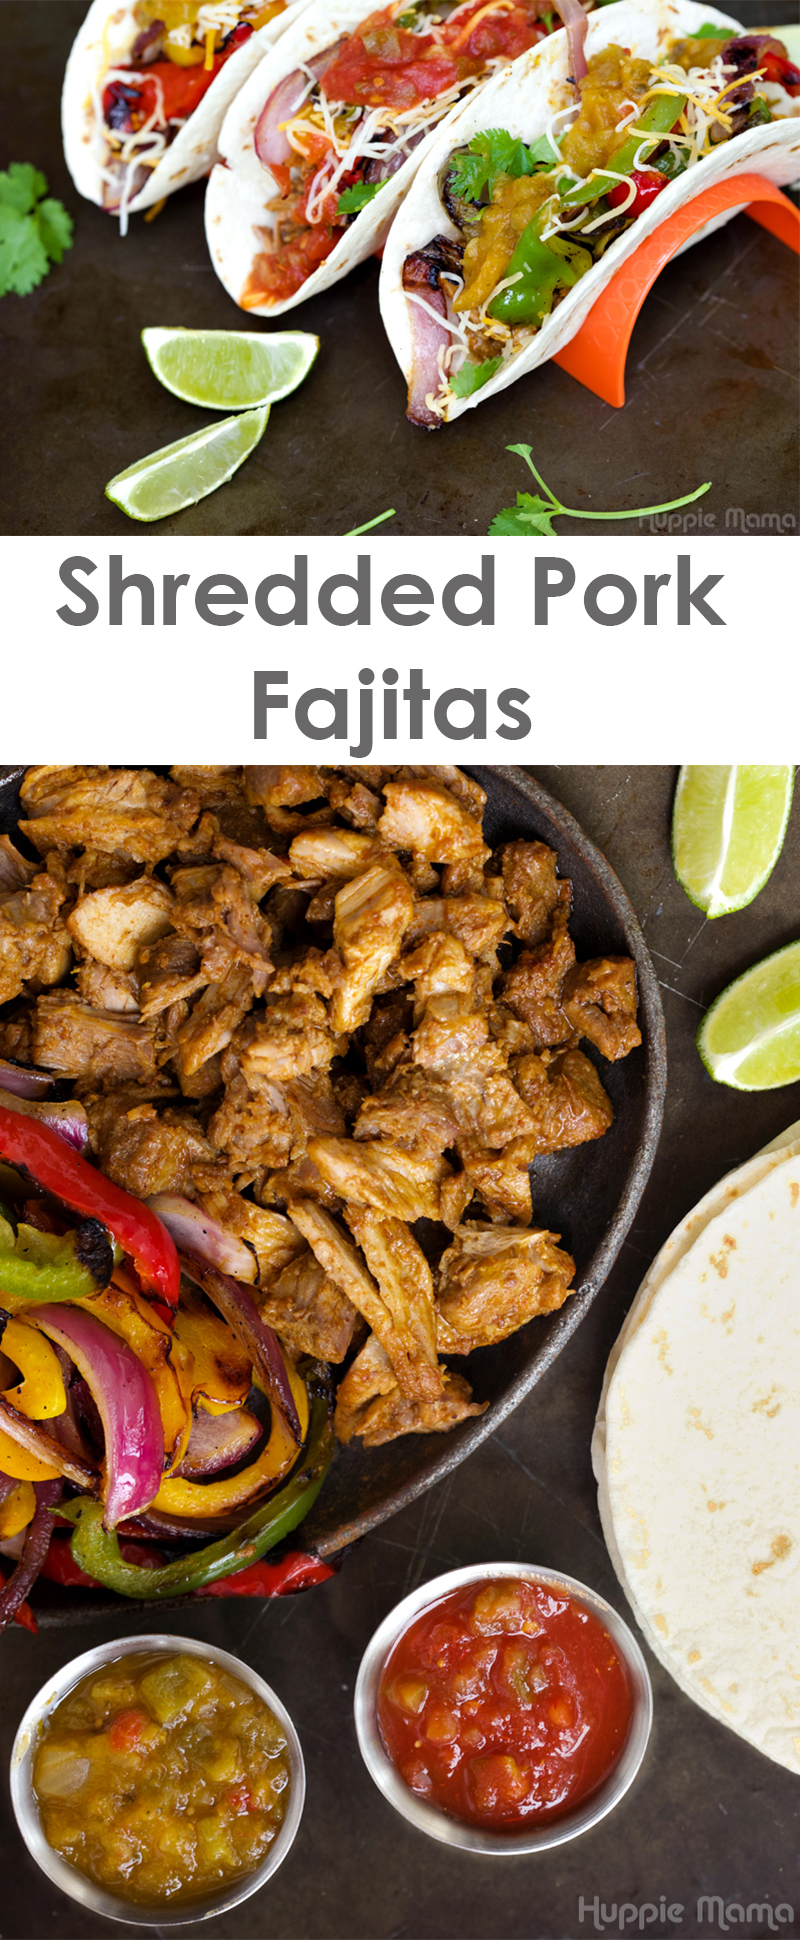 Shredded Pork Fajita